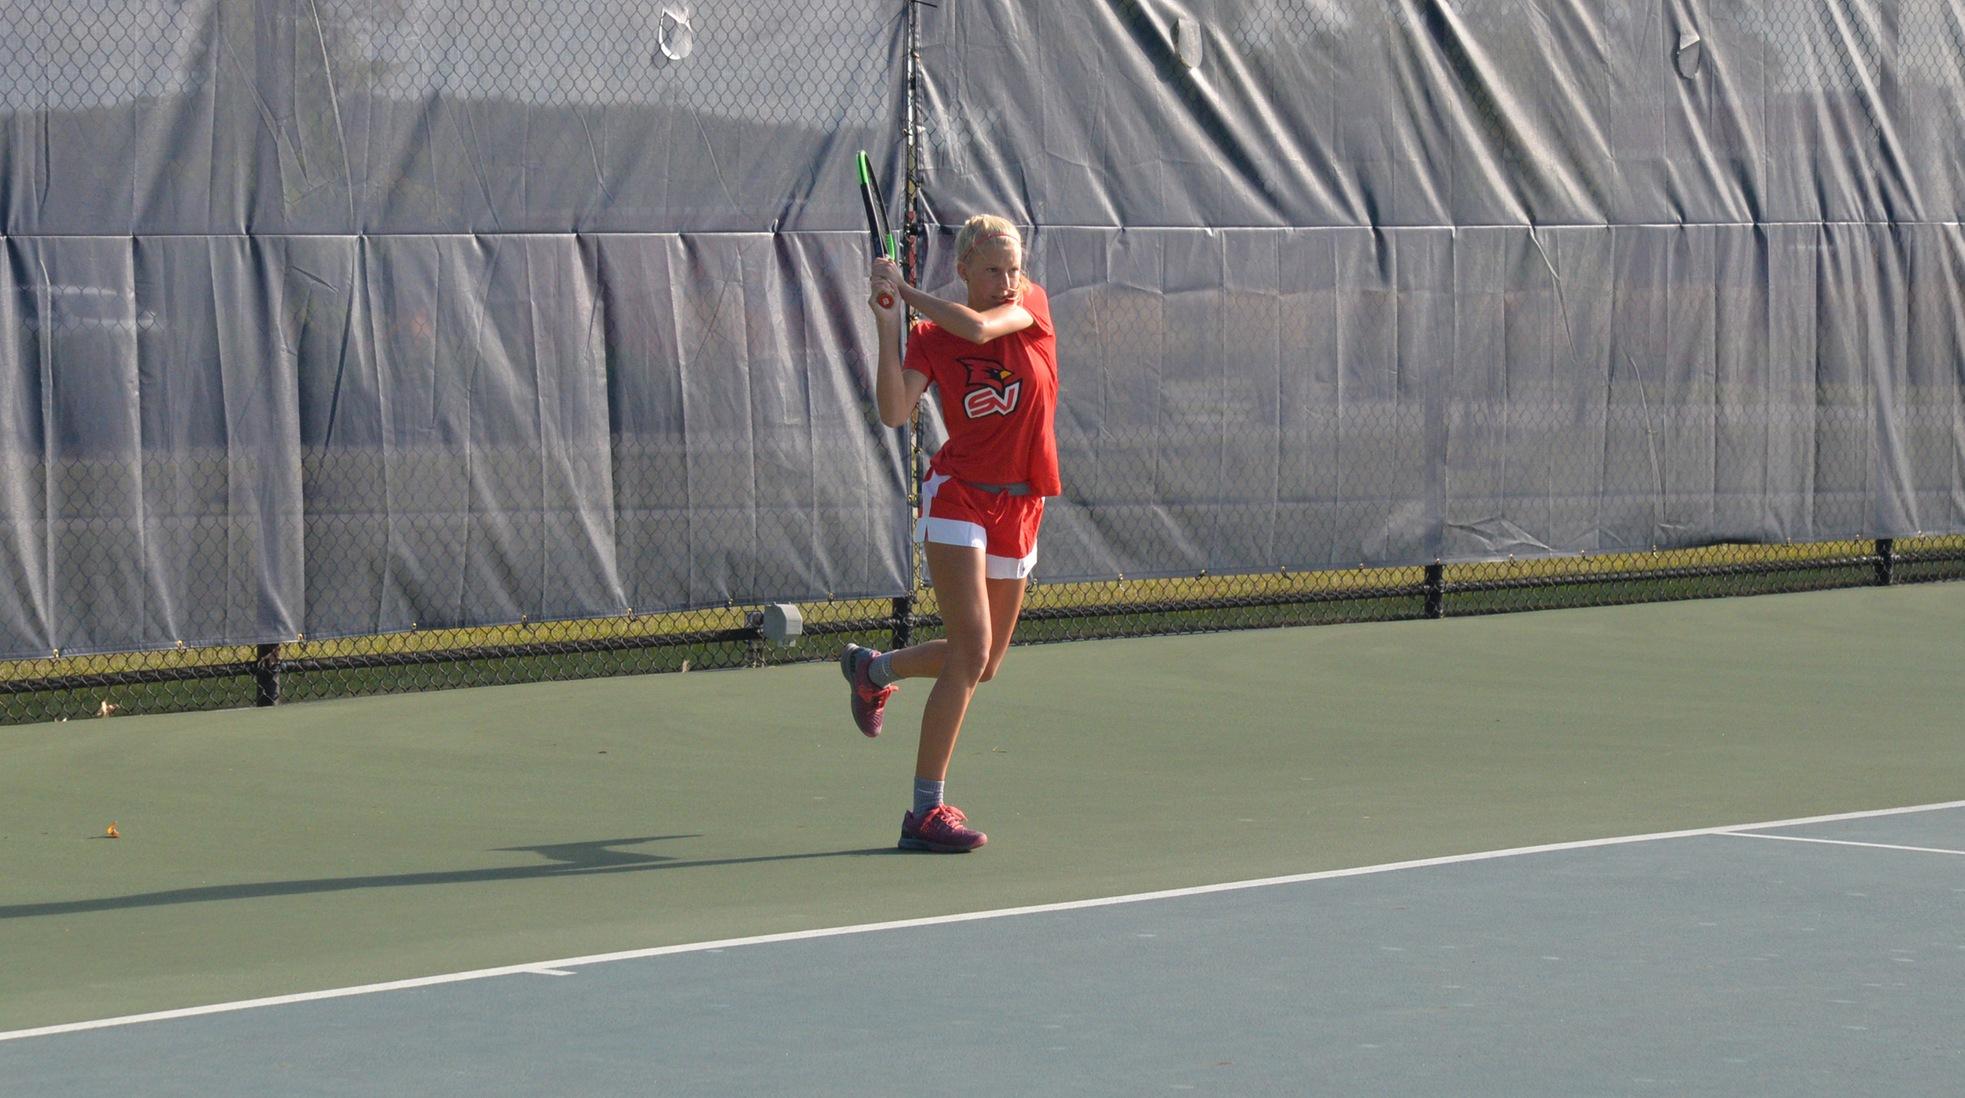 SVSU falls to LSSU by narrow 4-3 count in road action